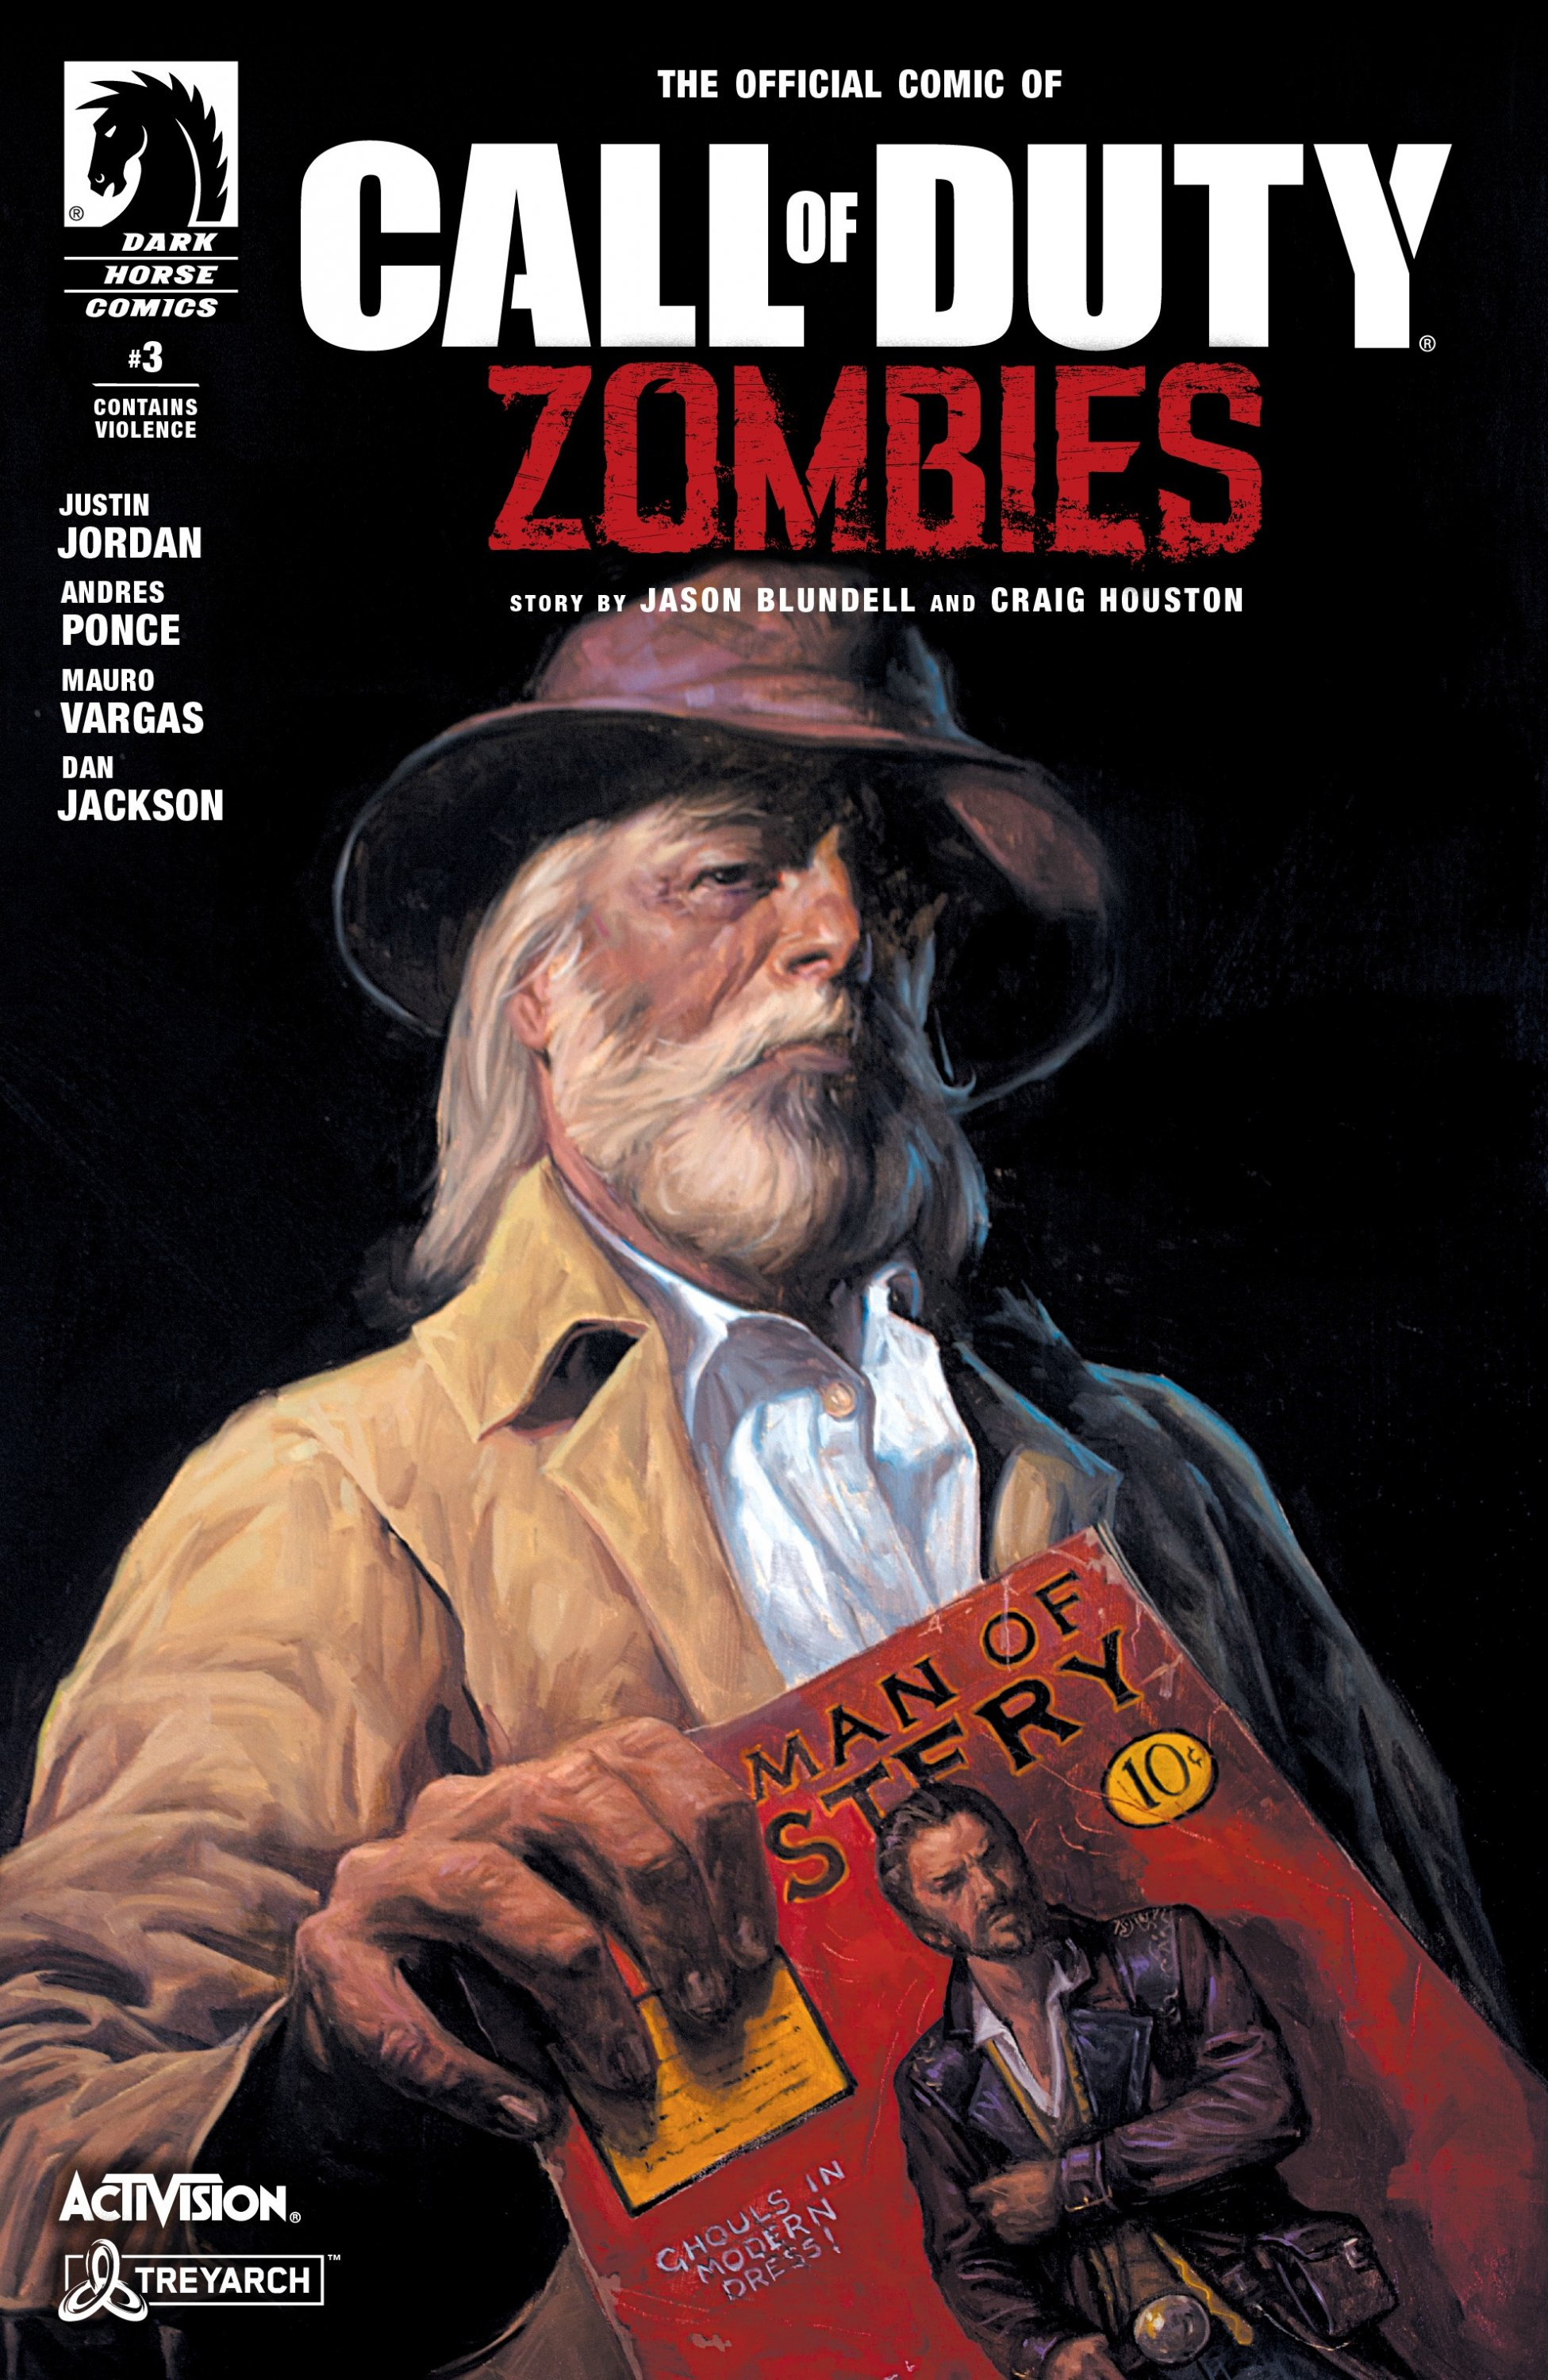 Call of Duty - Zombies Vol.2 03 (December 2018)